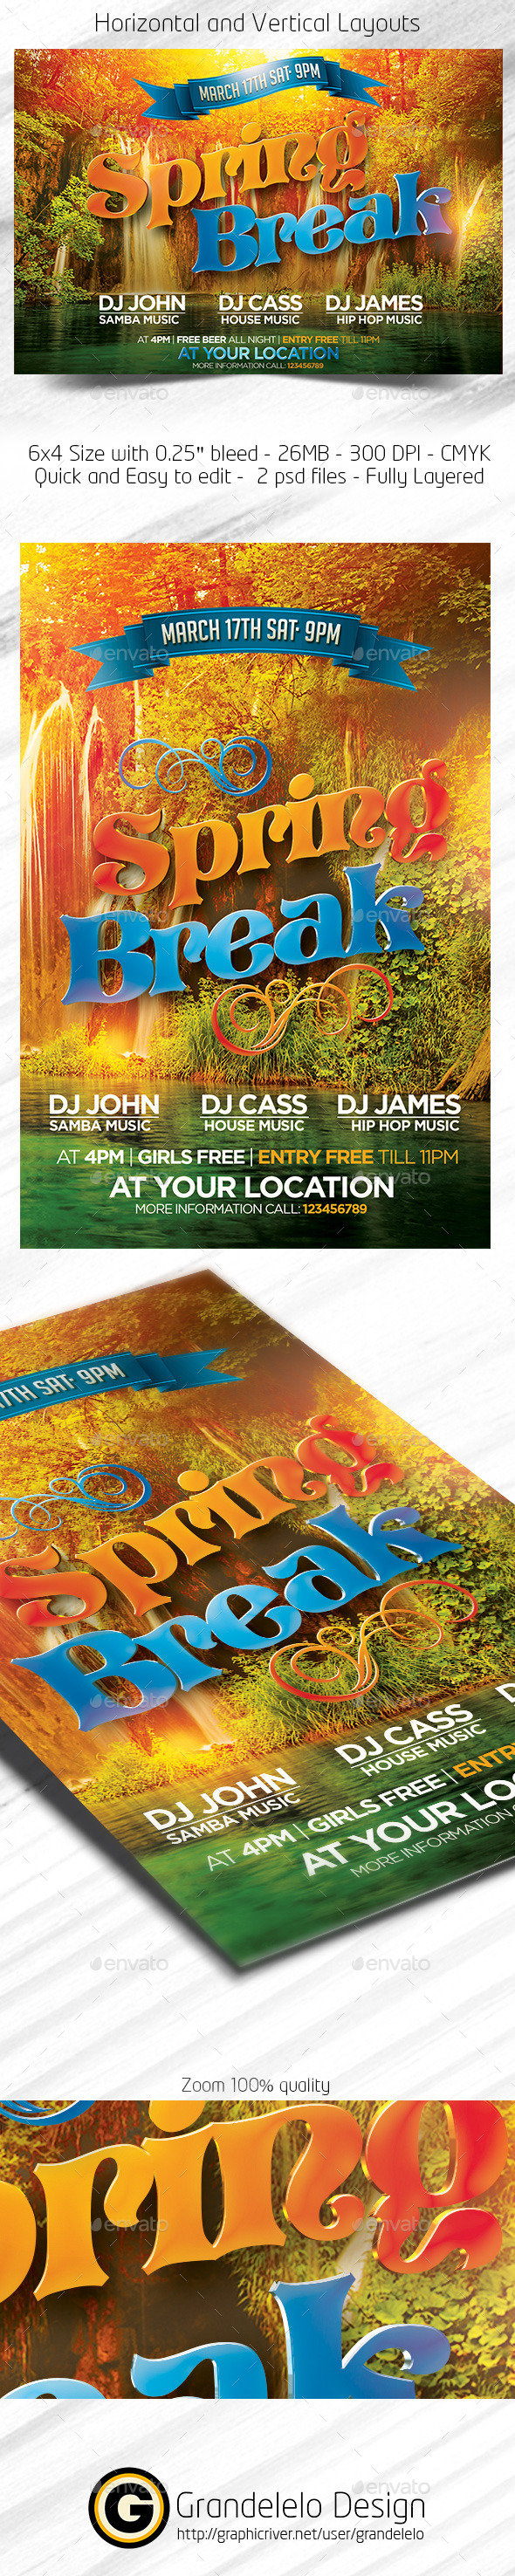 Spring Break Flyer Template 2015 - Clubs & Parties Events